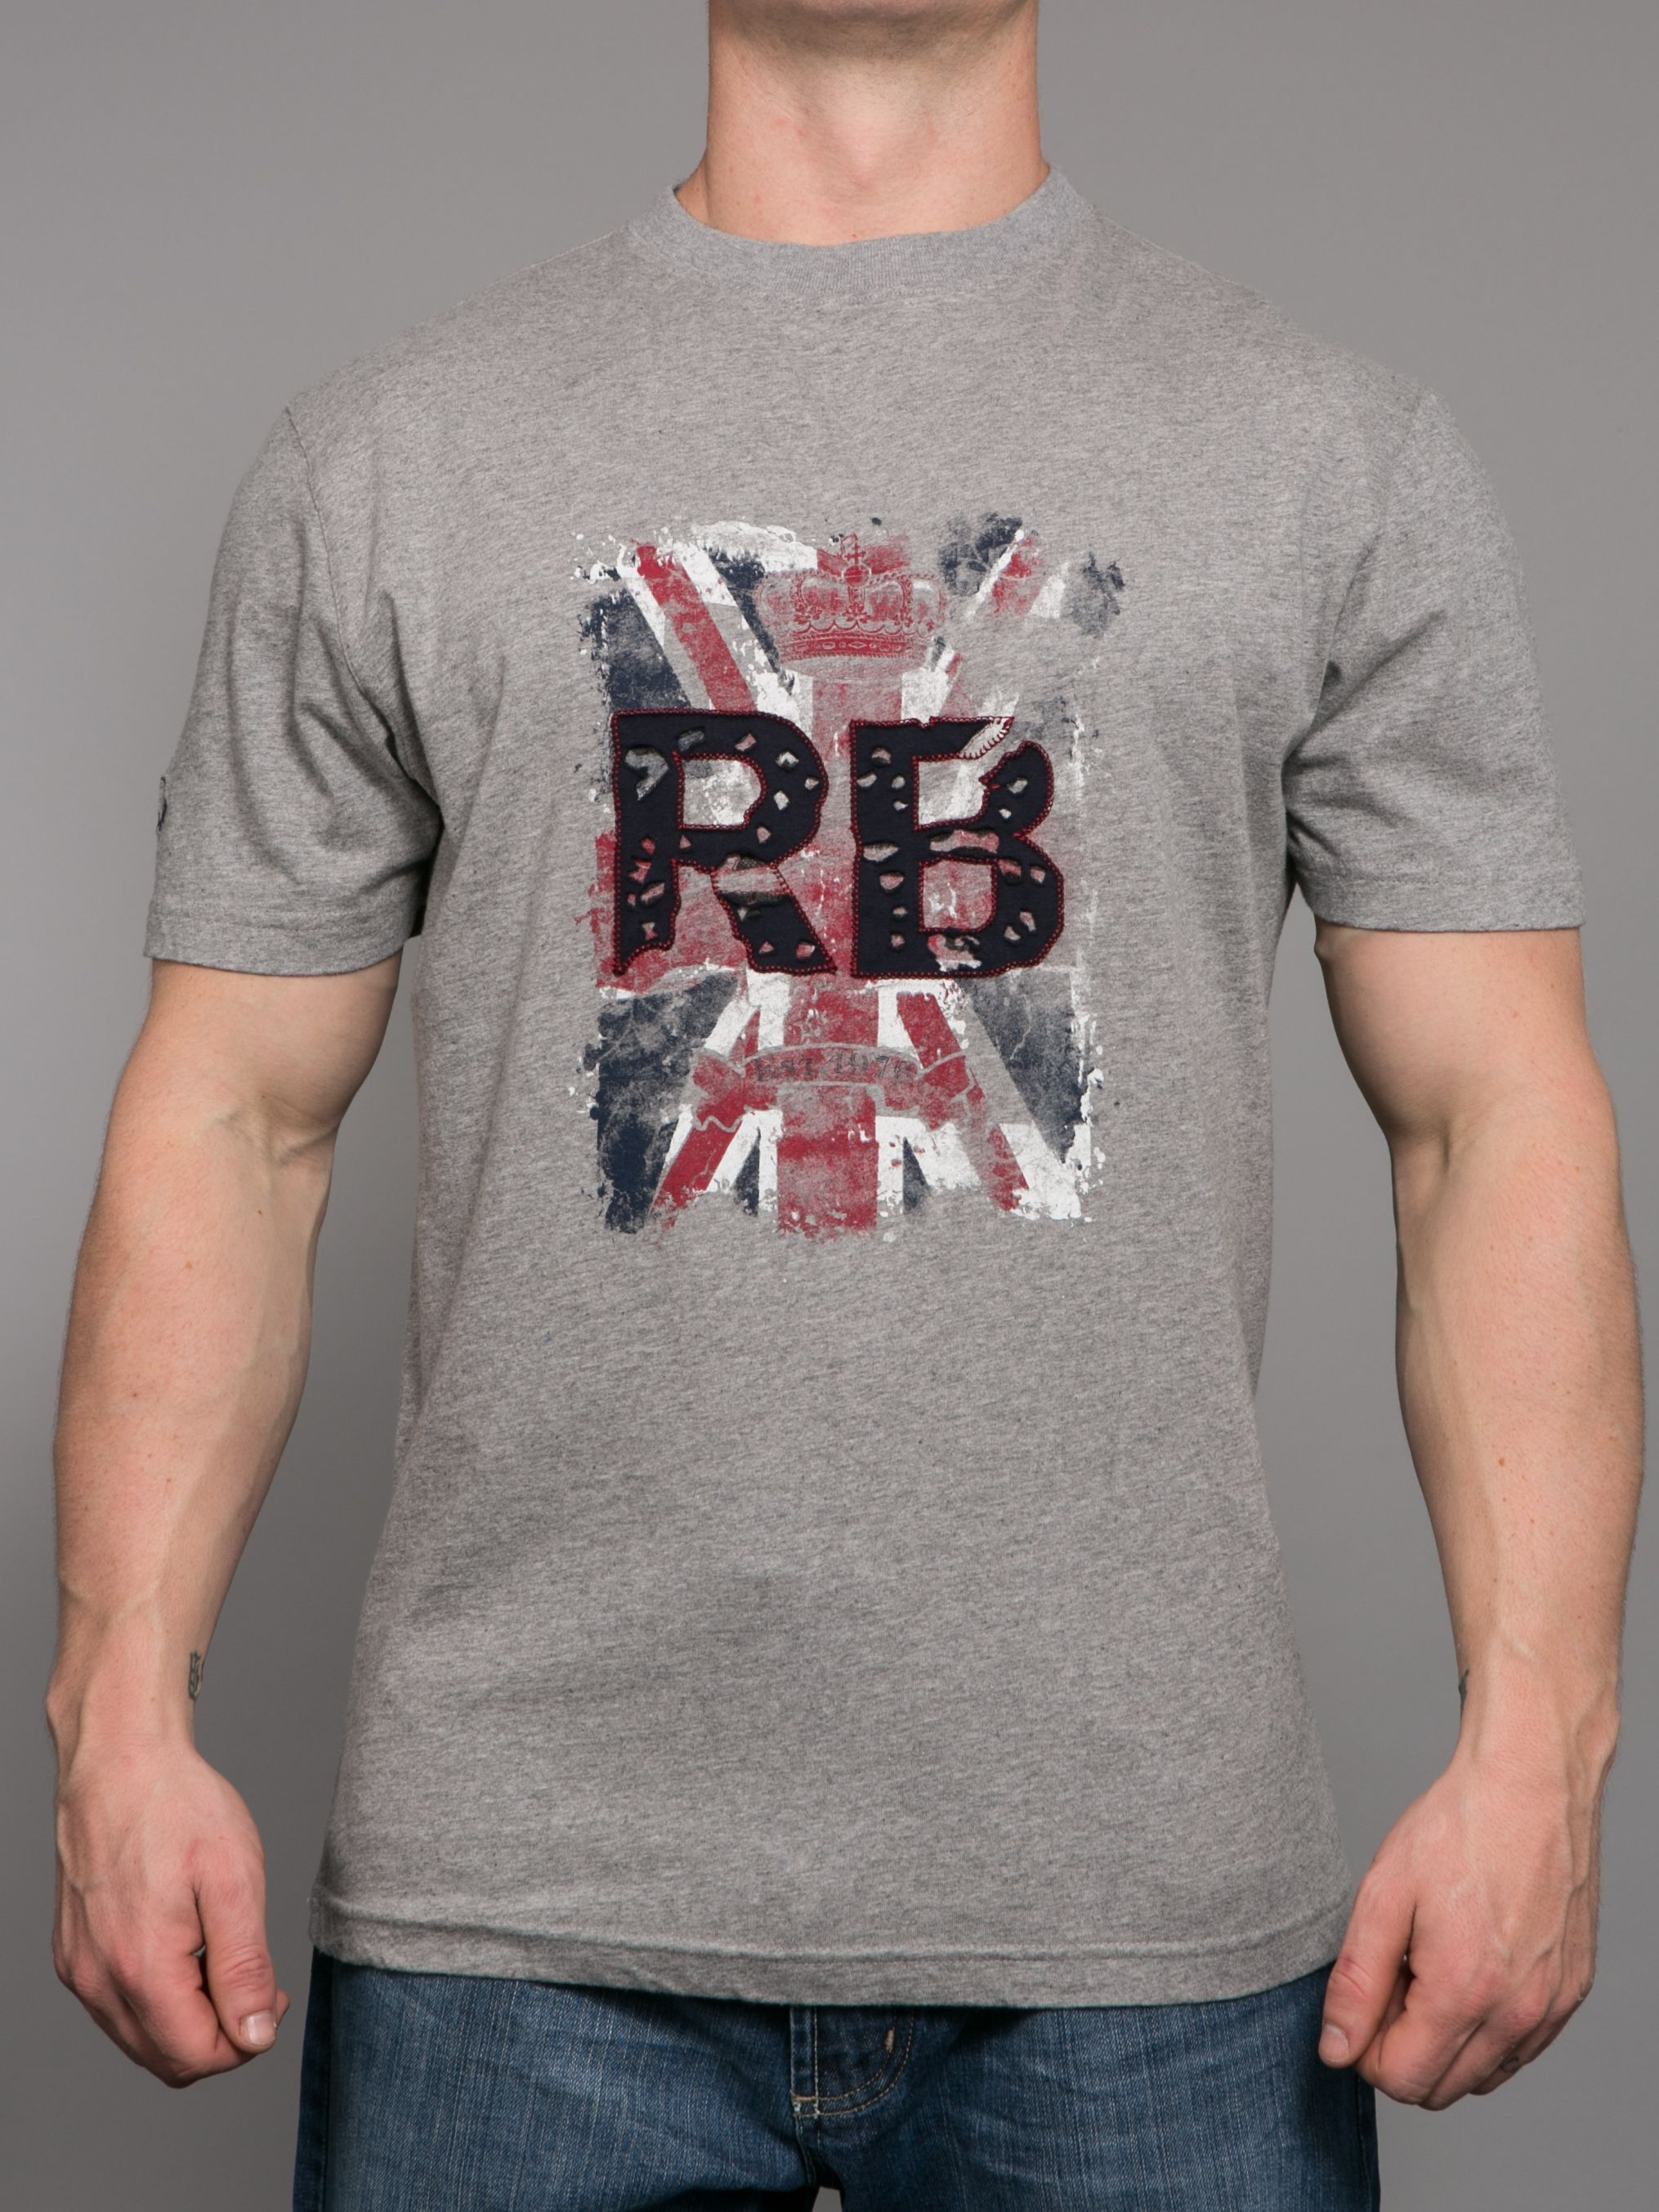 Union Jack crew neck t-shirt